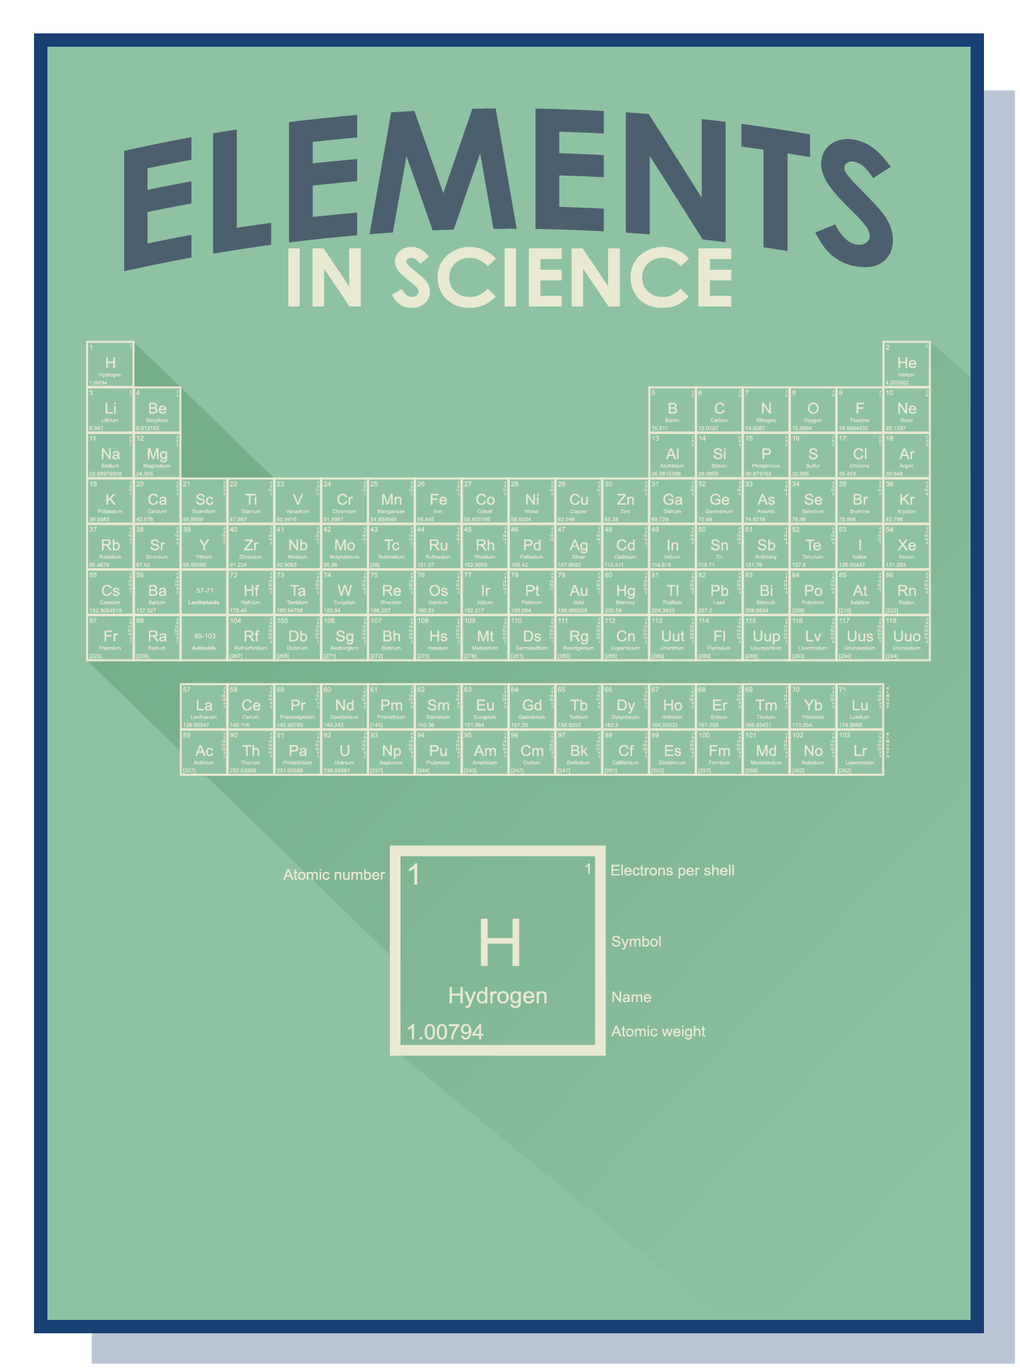 Elements in science